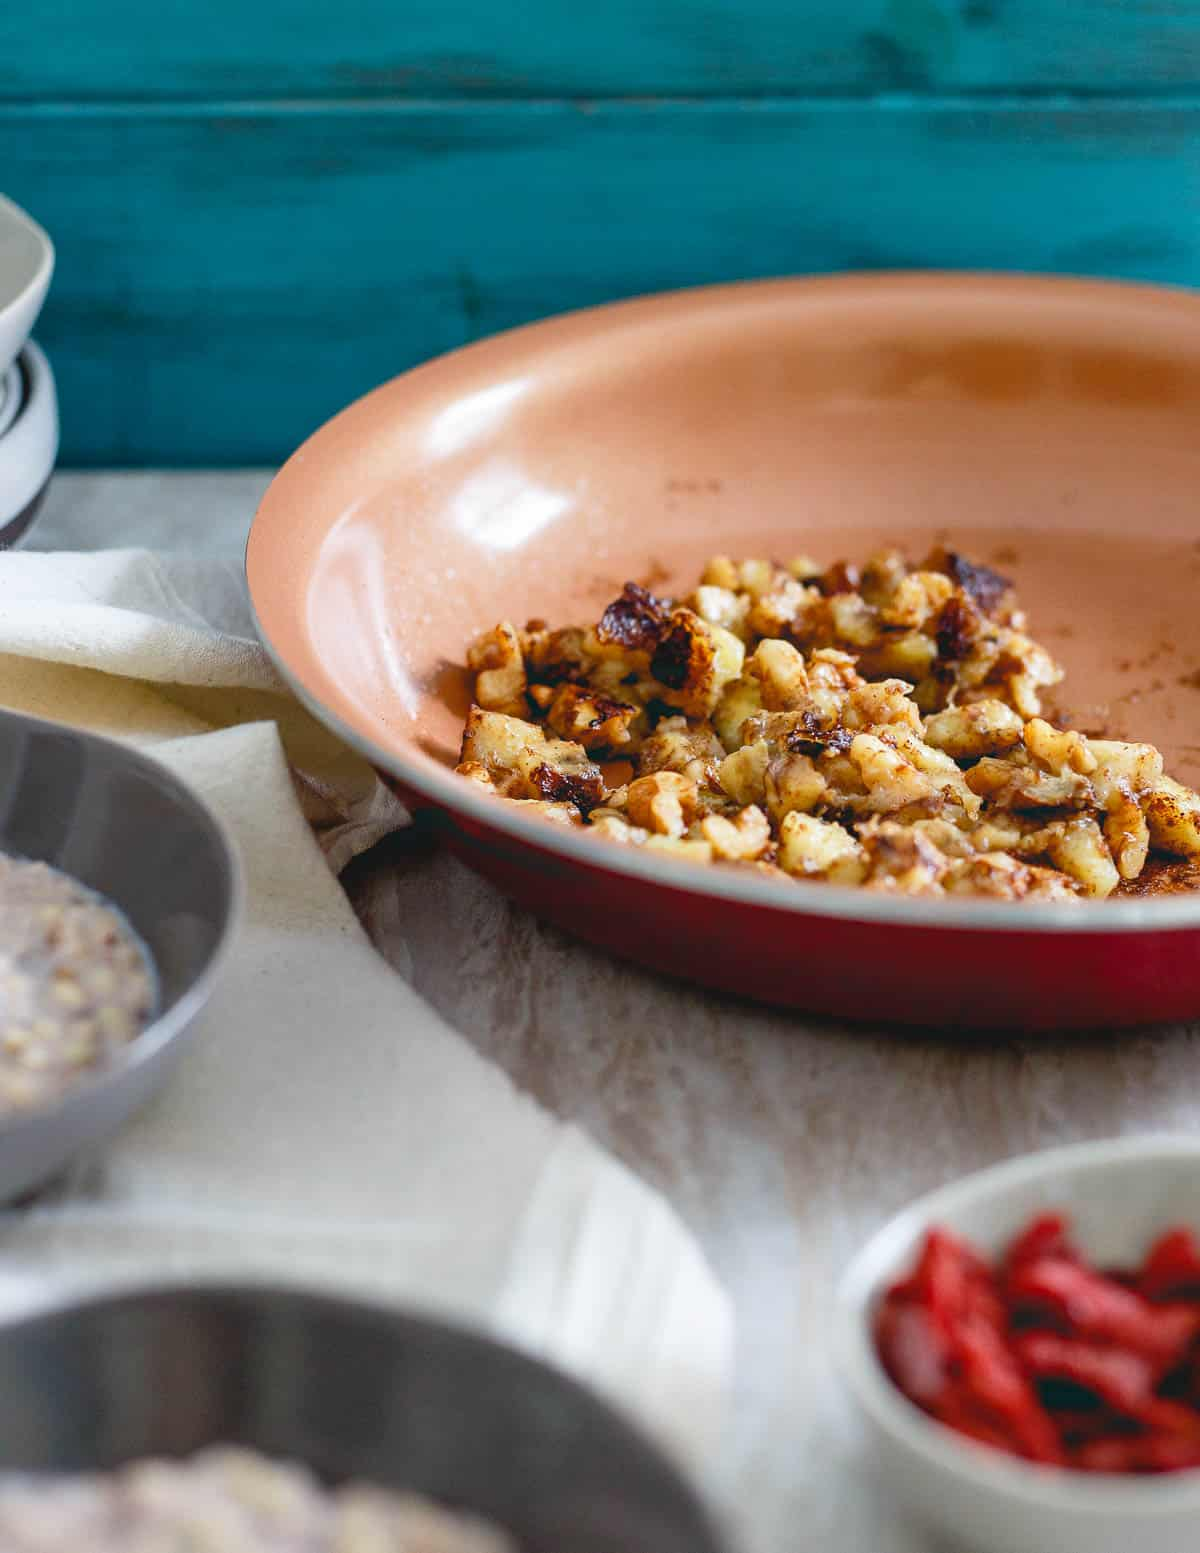 A simple caramelized banana walnut topping makes this warm quinoa cereal a delicious bowl for breakfast.